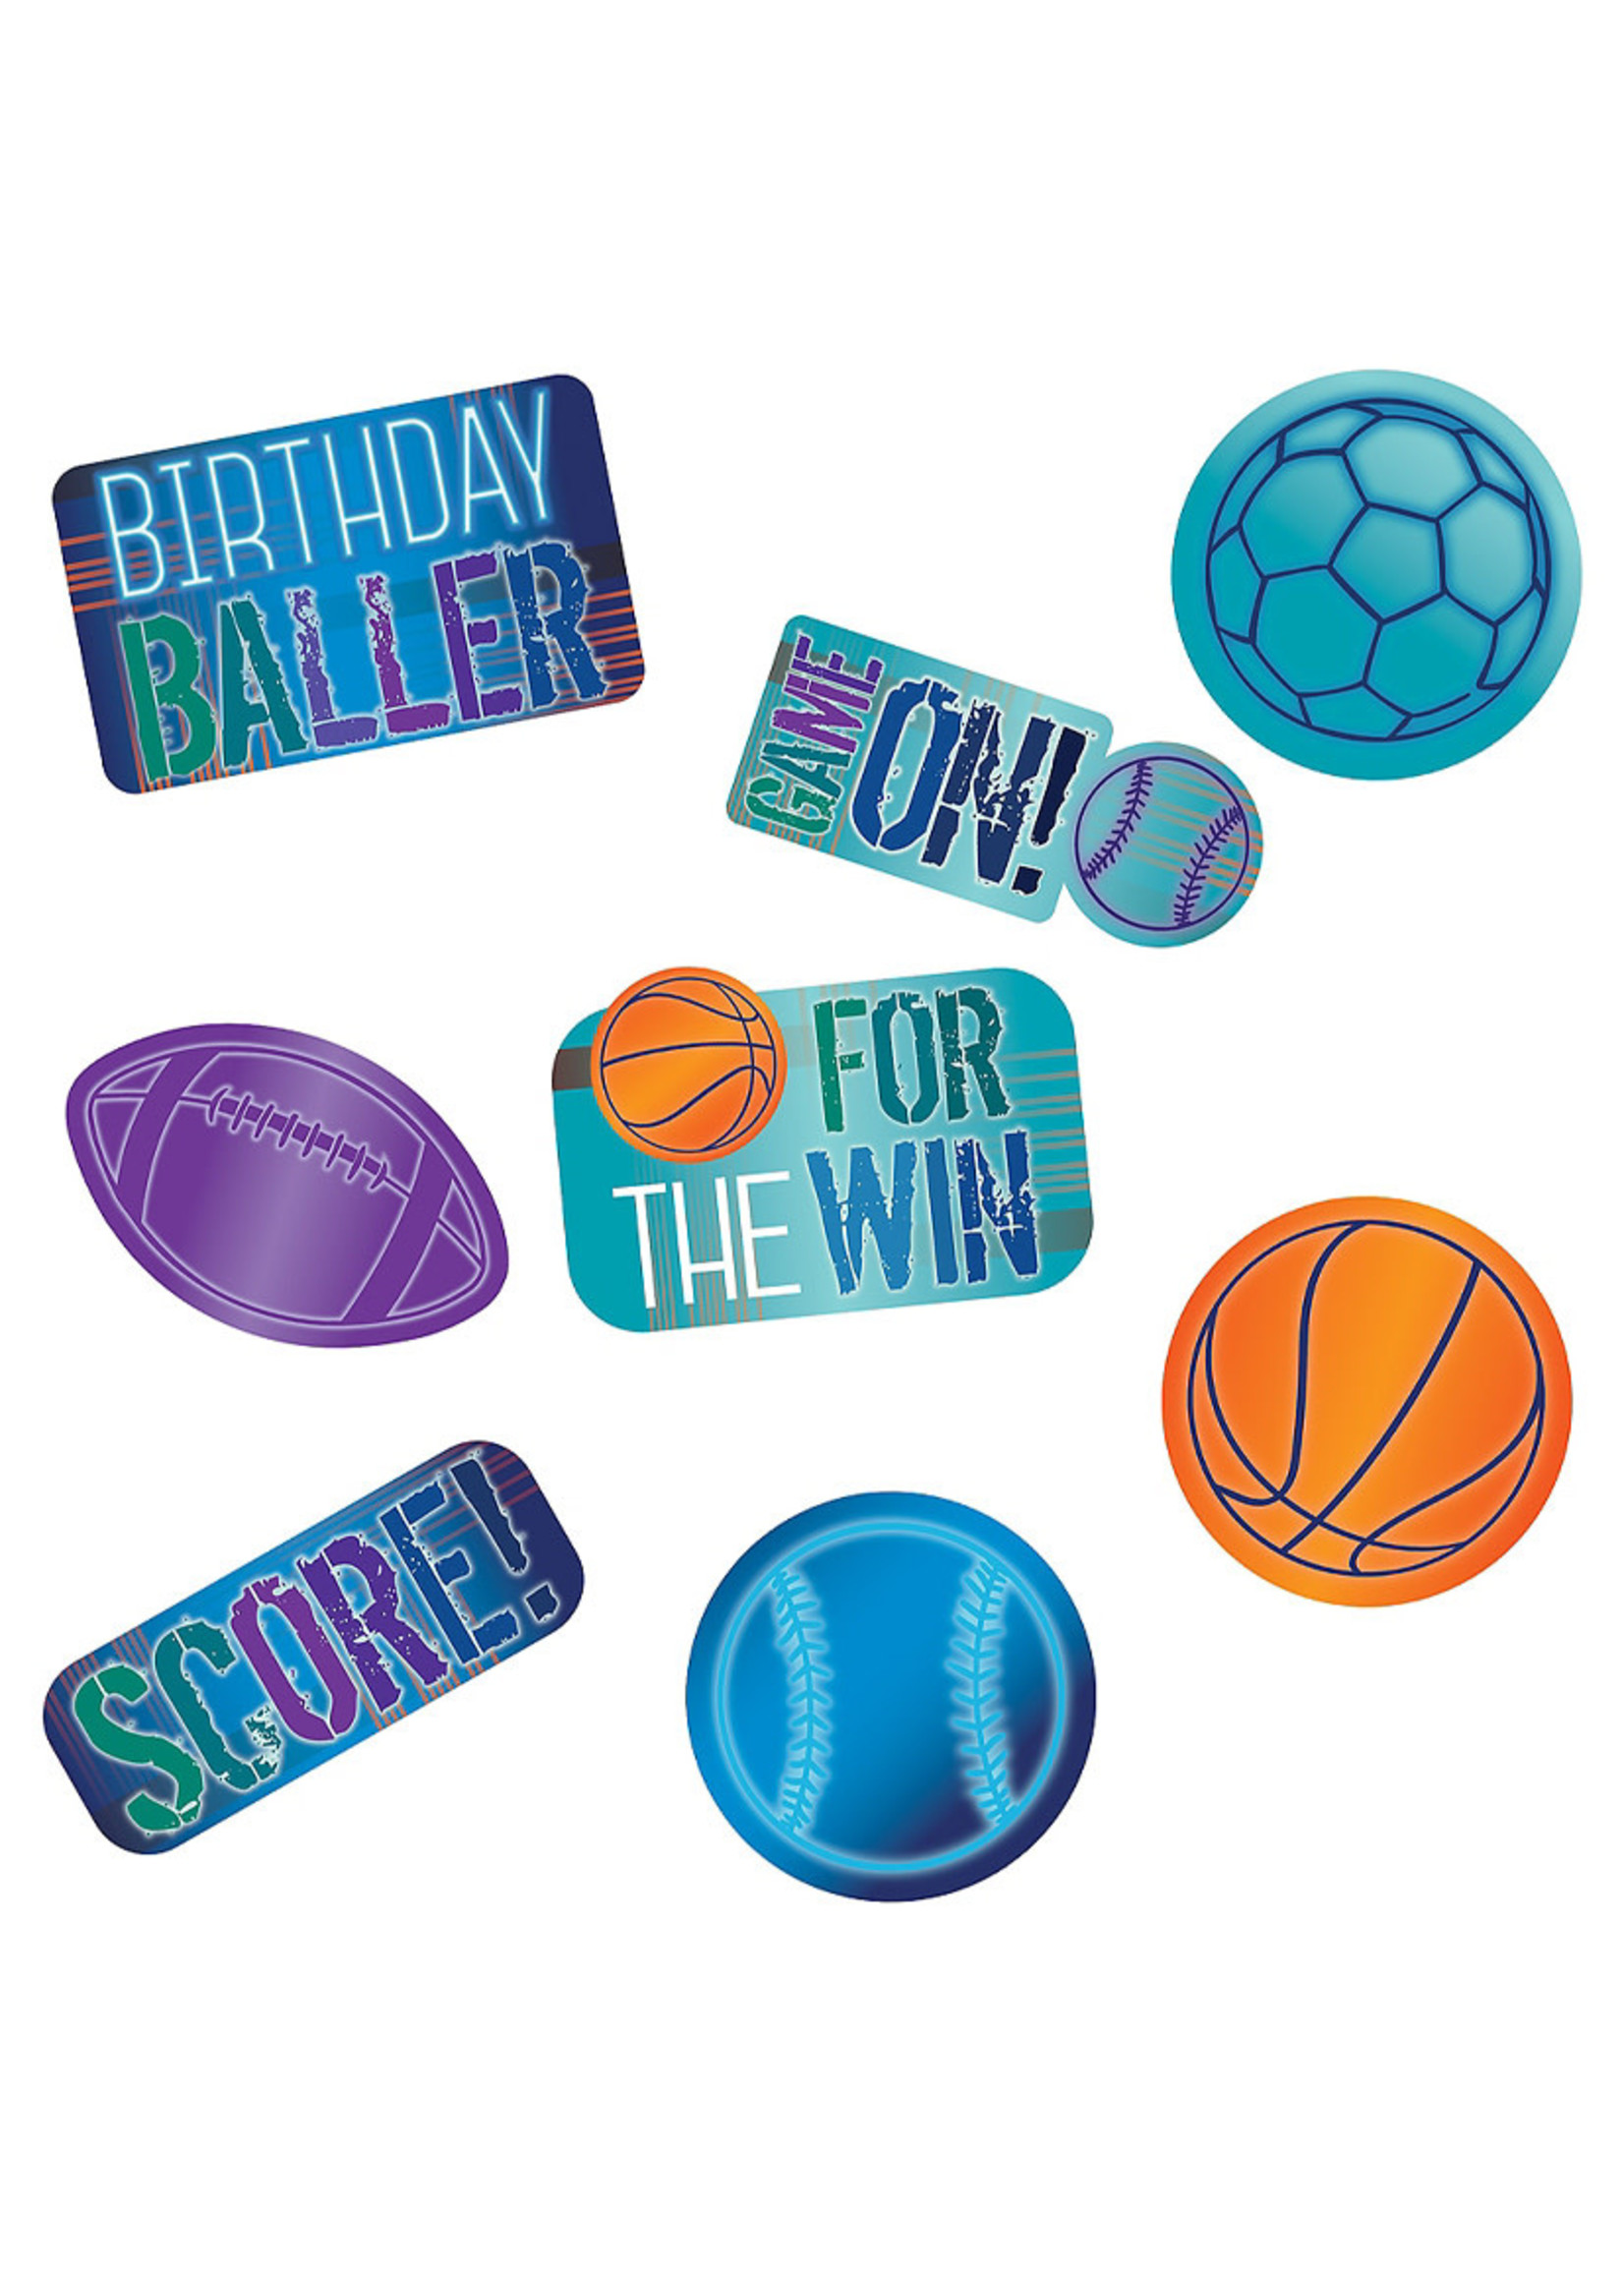 Birthday Baller Cardstock Cutouts 12ct